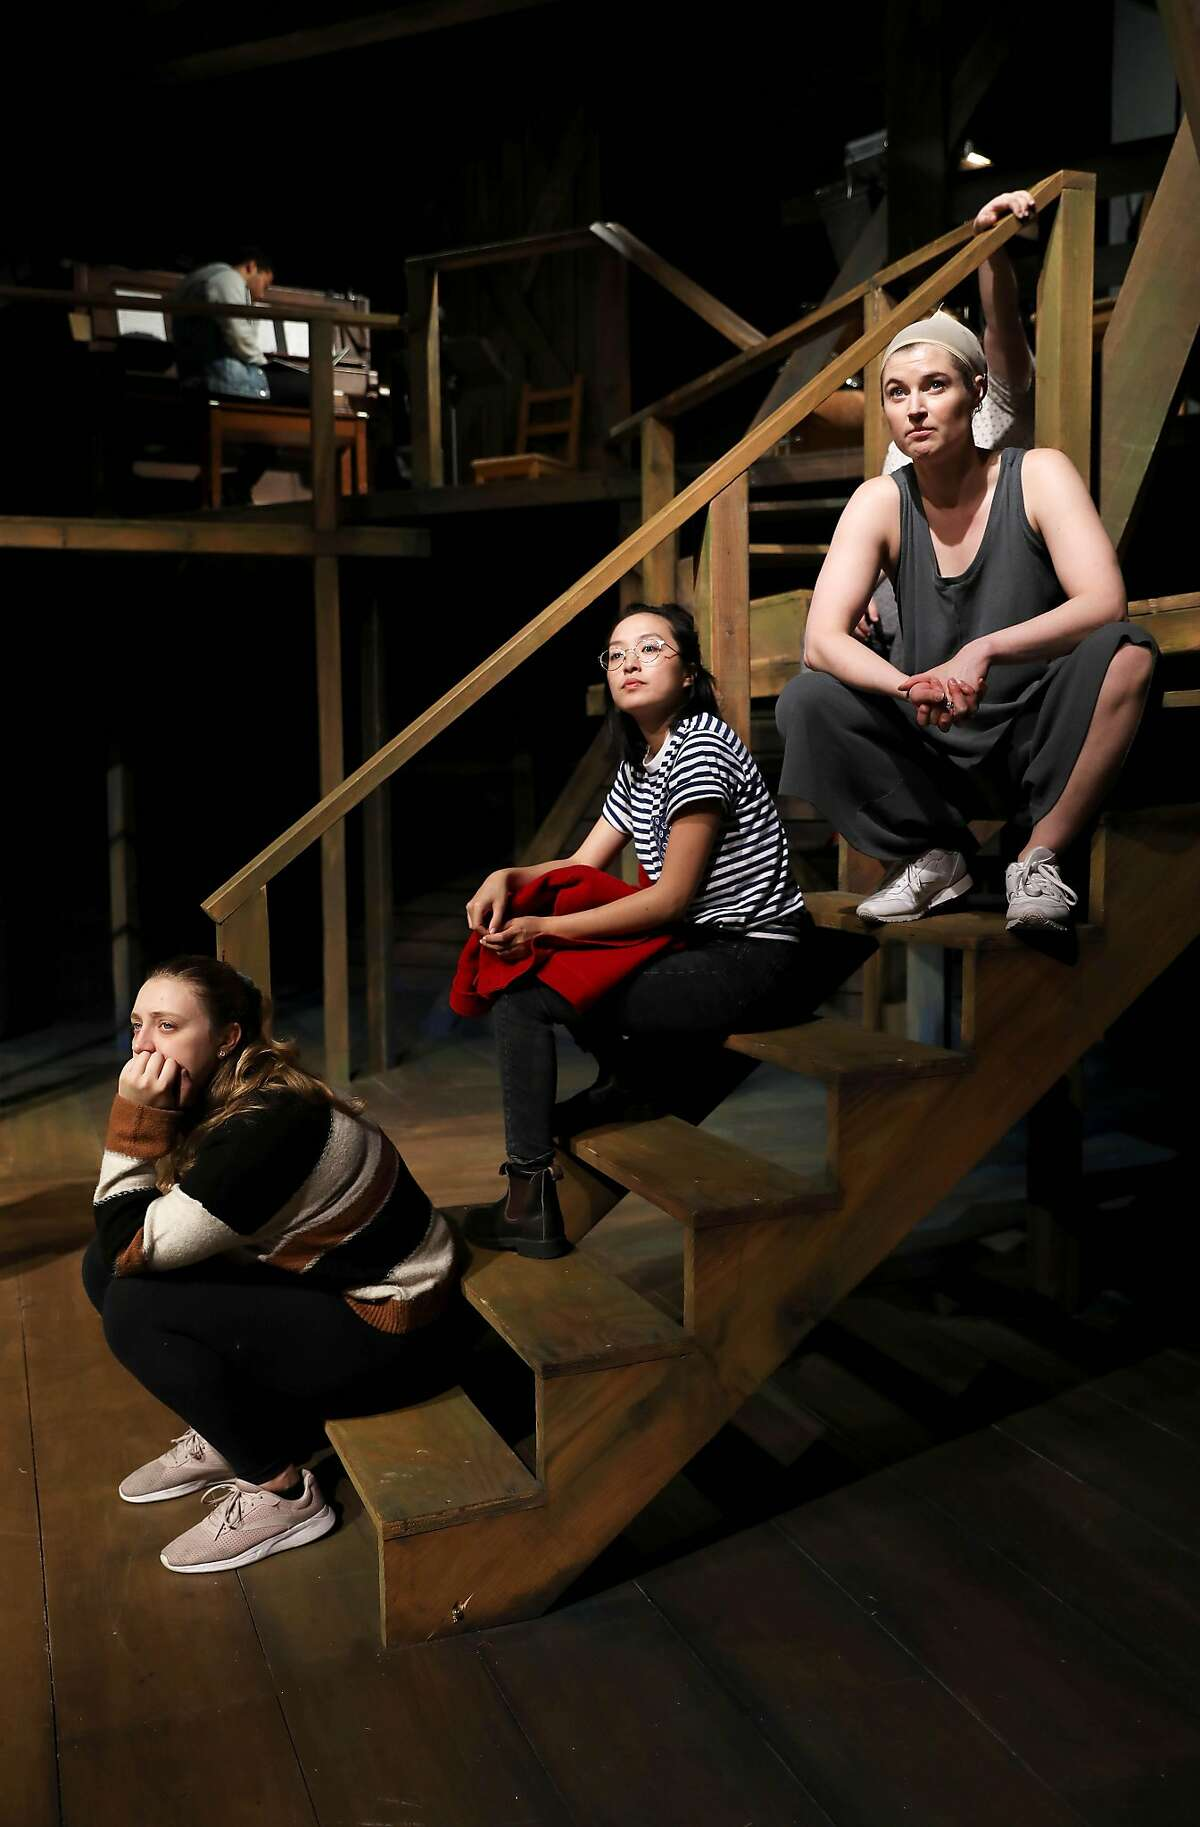 Vinegar Tom cast members Lyndsee Bell, left, Sharon Shao, and Amanda Farbstein listen to instructions during rehearsal at Shotgun Players in Berkeley, Calif., on Wednesday, December 11, 2019. The theater company reclassified actors, stage managers, set building, lighting team as employees a few year ago after a state audit, and is raising money for a fund to cover the extra expenses of doing so.